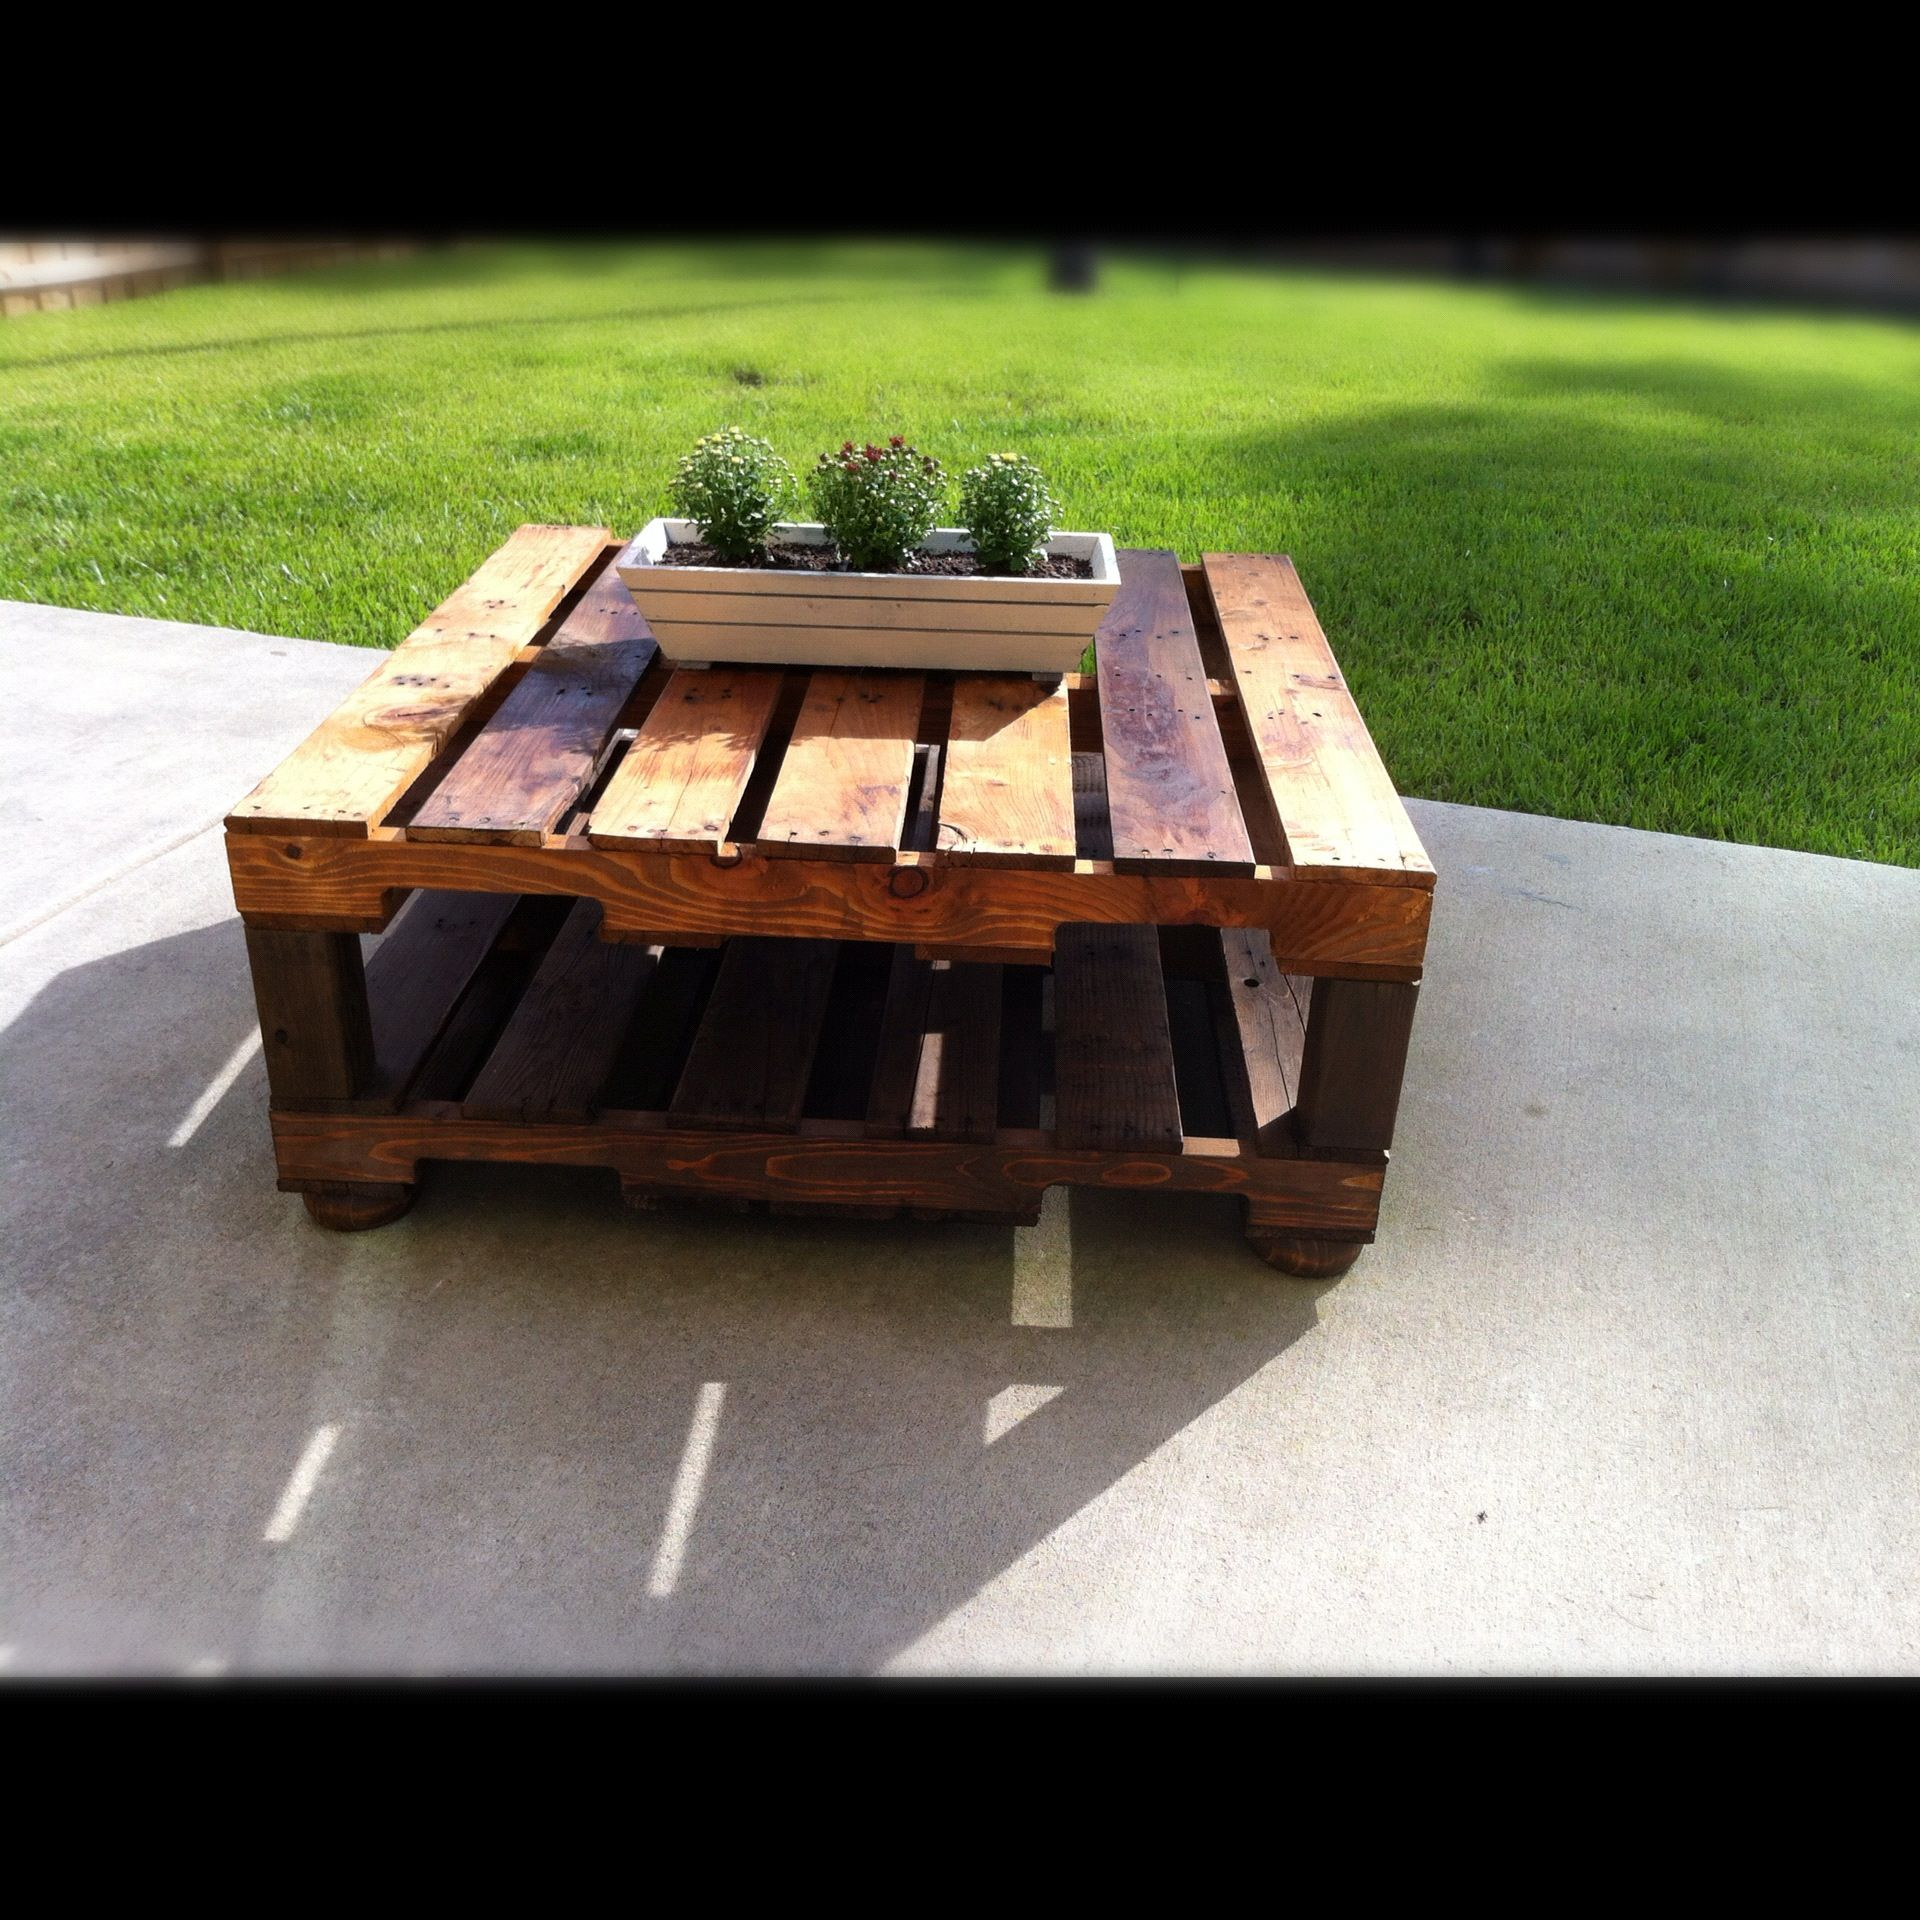 Outdoor table made with 2 free pallets 4x4 wood legs from Lowe s